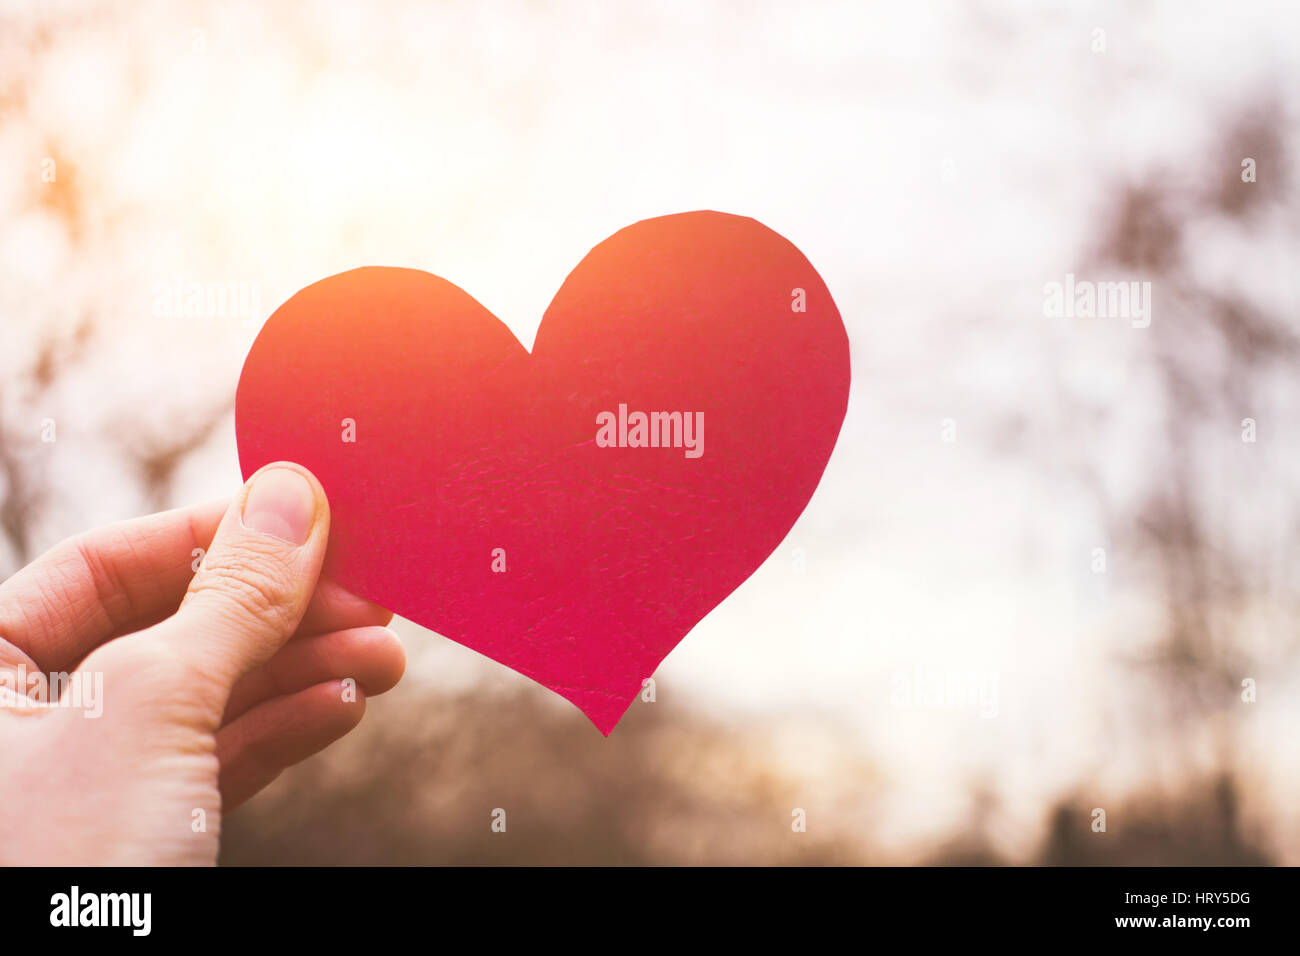 valentines day card, hand holding heart, love concept - Stock Image